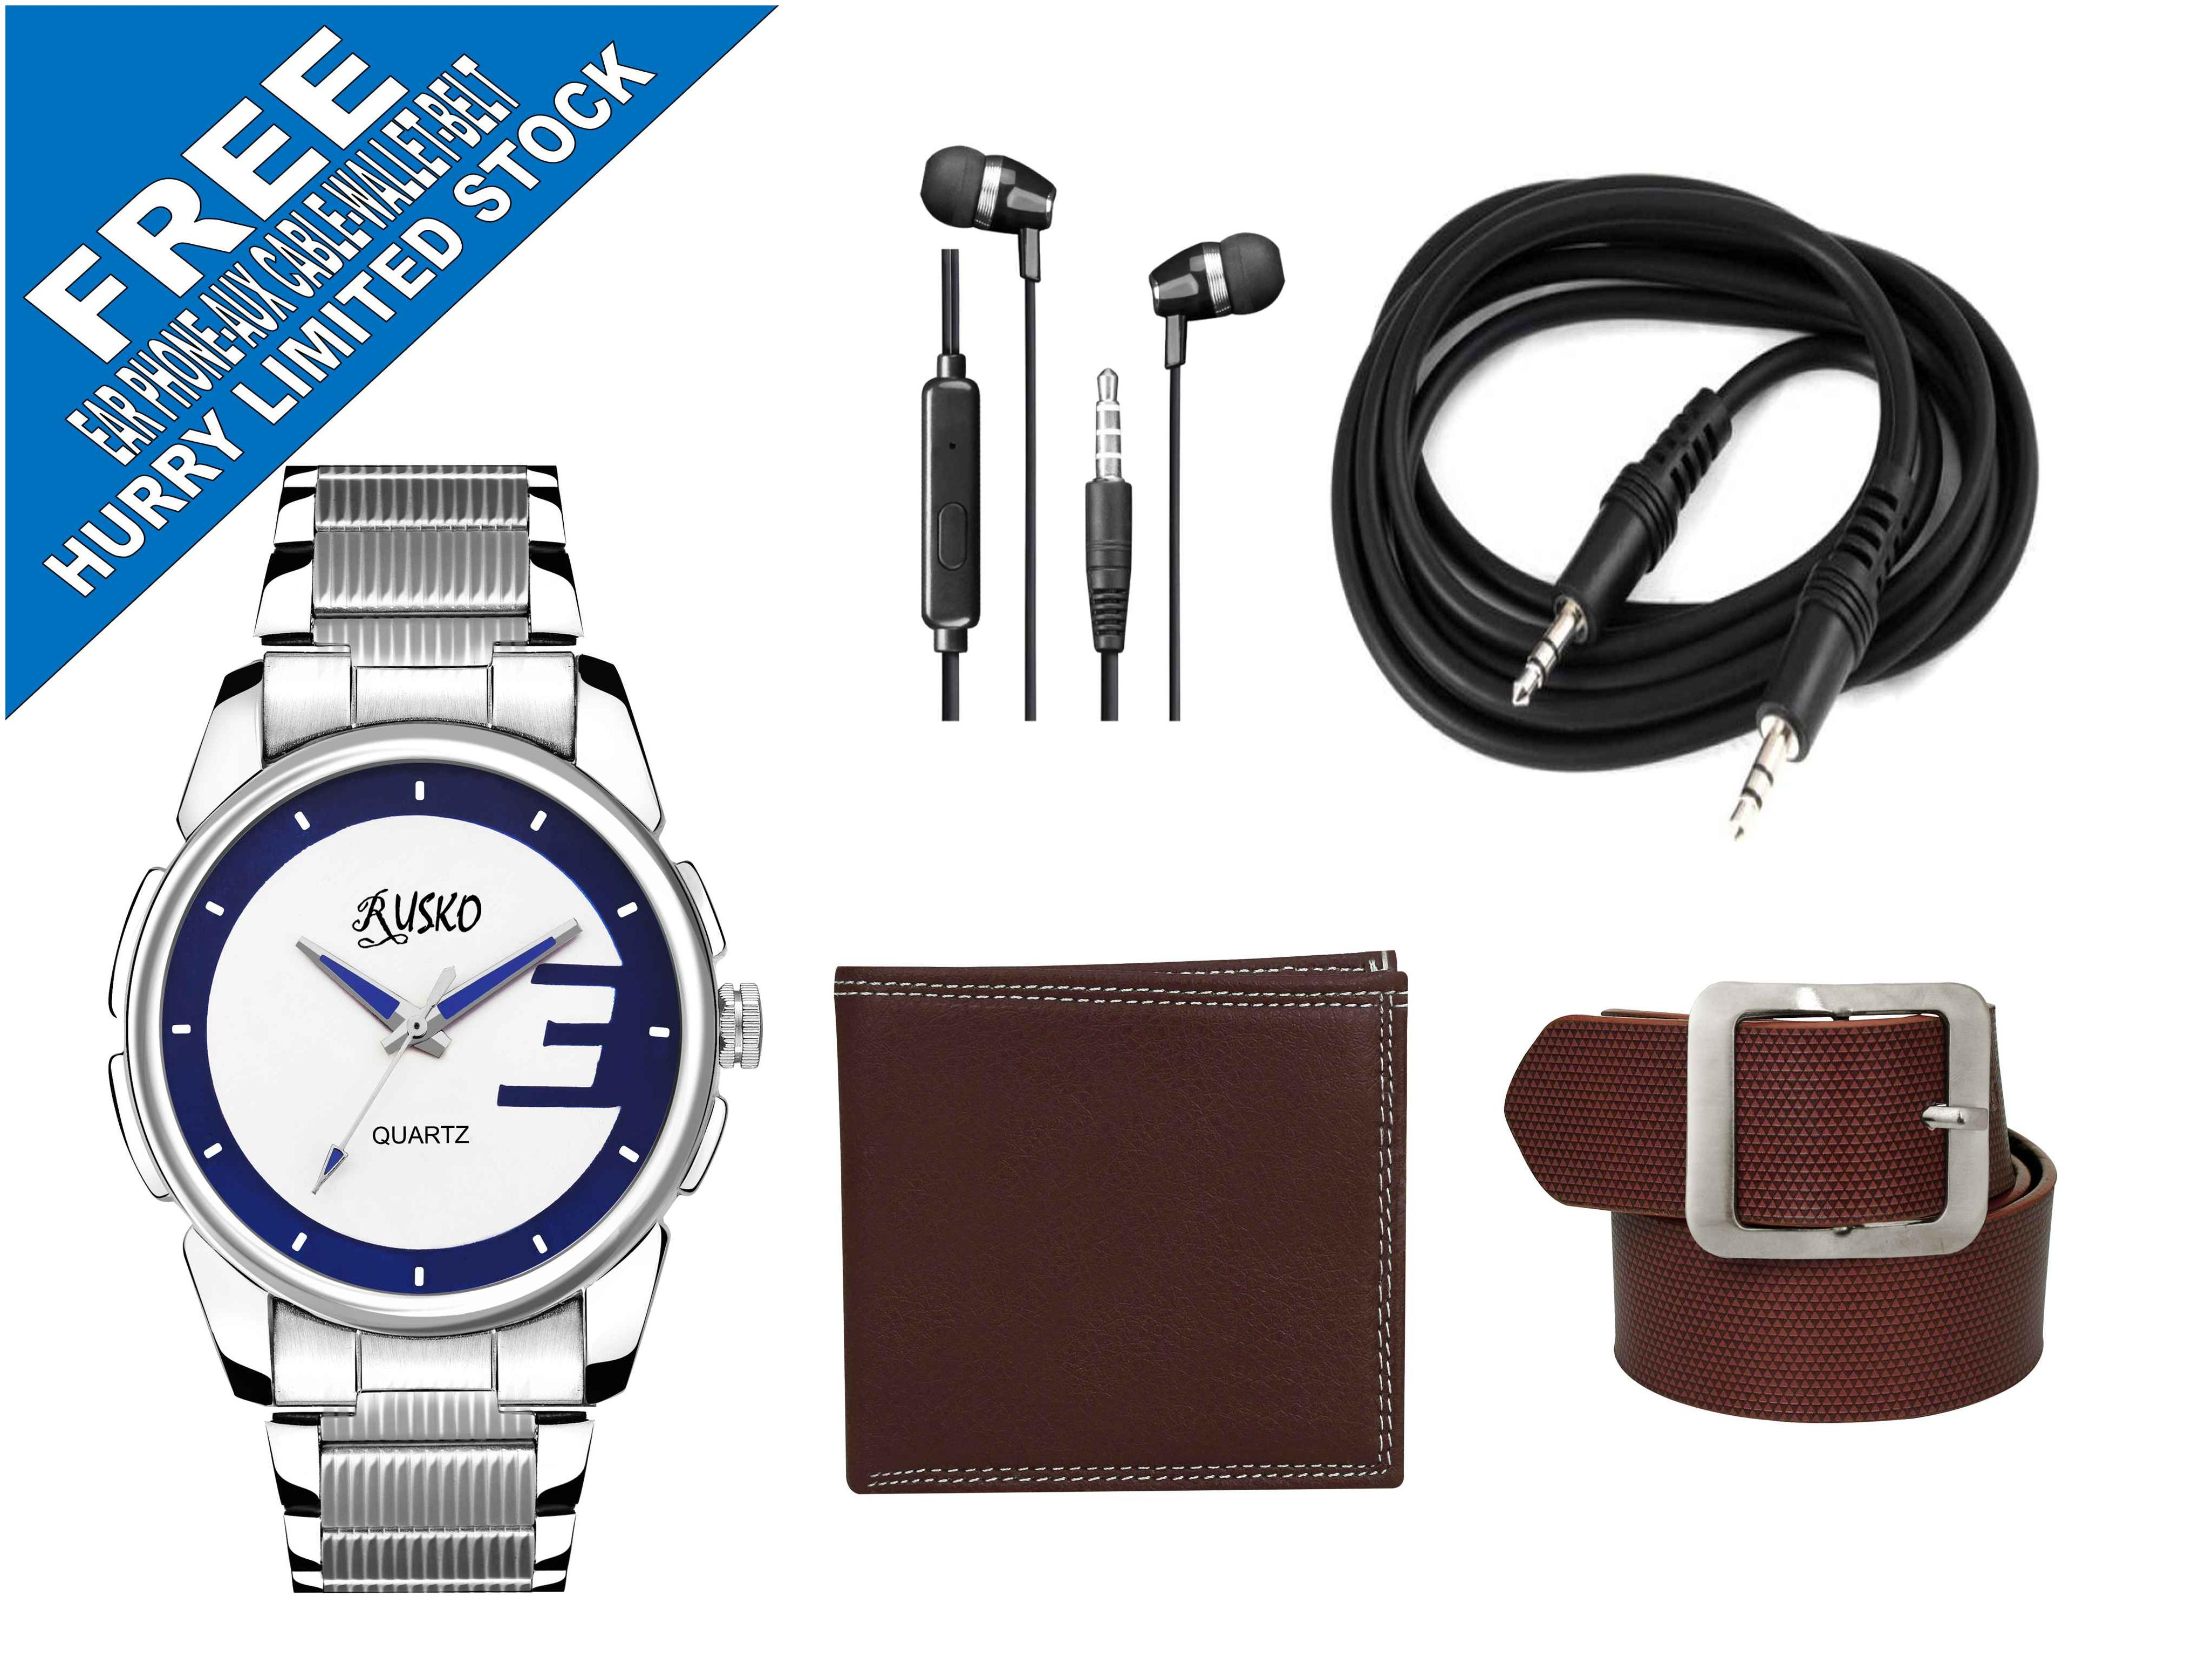 Rusko Men's Analog Watch with Free Combo of Men's Wallet+ Men's Belt+ Aux Cable+ Ear Phone